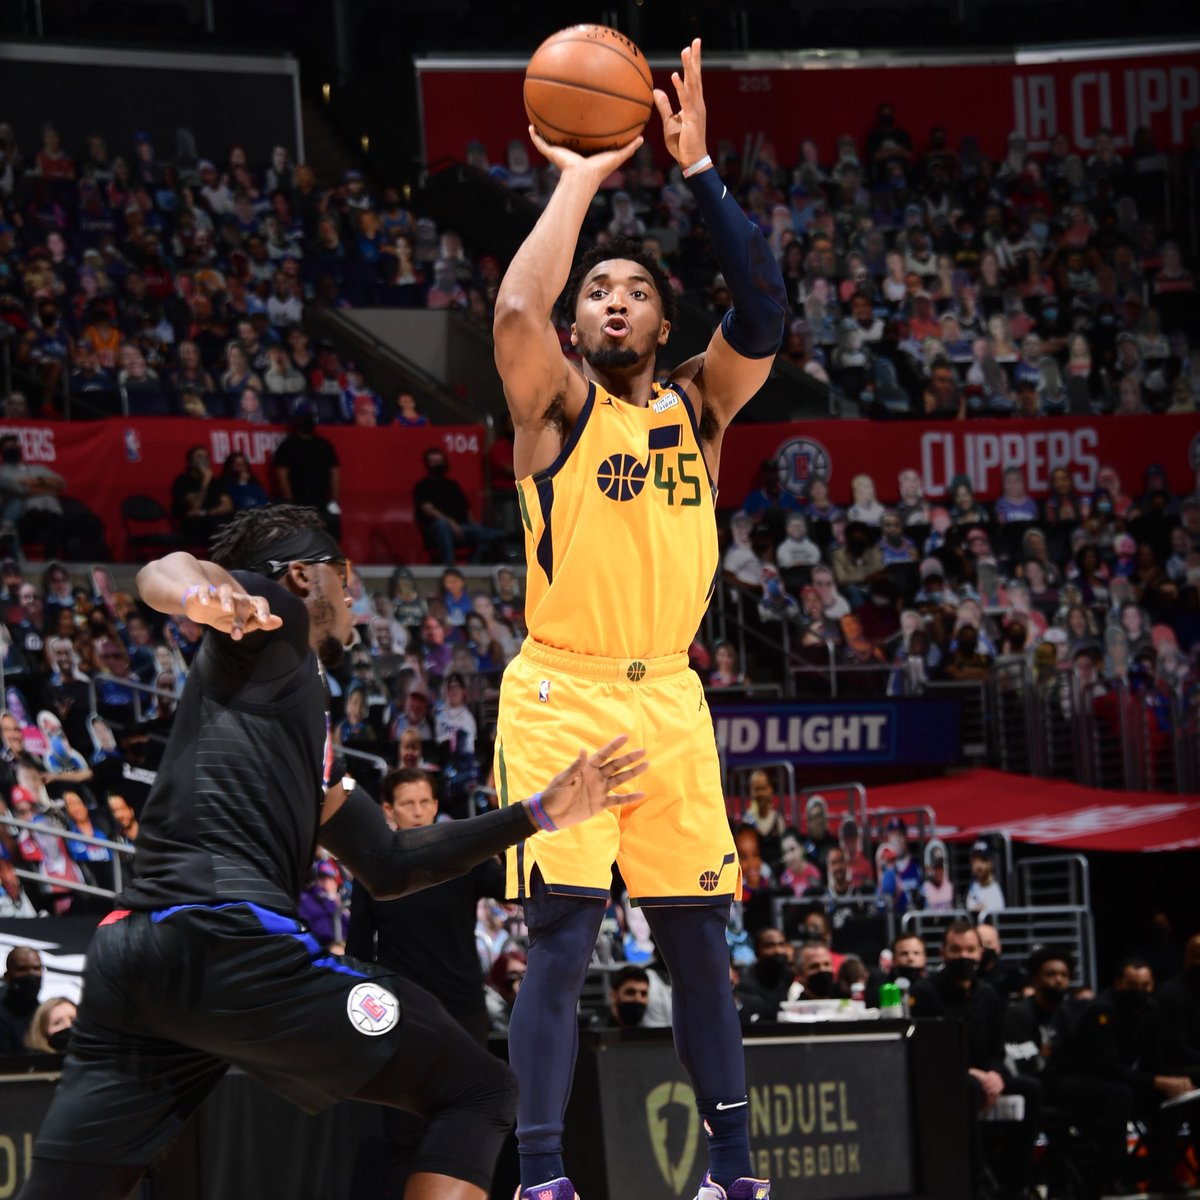 Donovan Mitchell is the third player in NBA history to make 5+ threes in 5 straight postseason games, joining Steph Curry (2015) and Klay Thompson (2016). https://t.co/uGA1kIWQDd